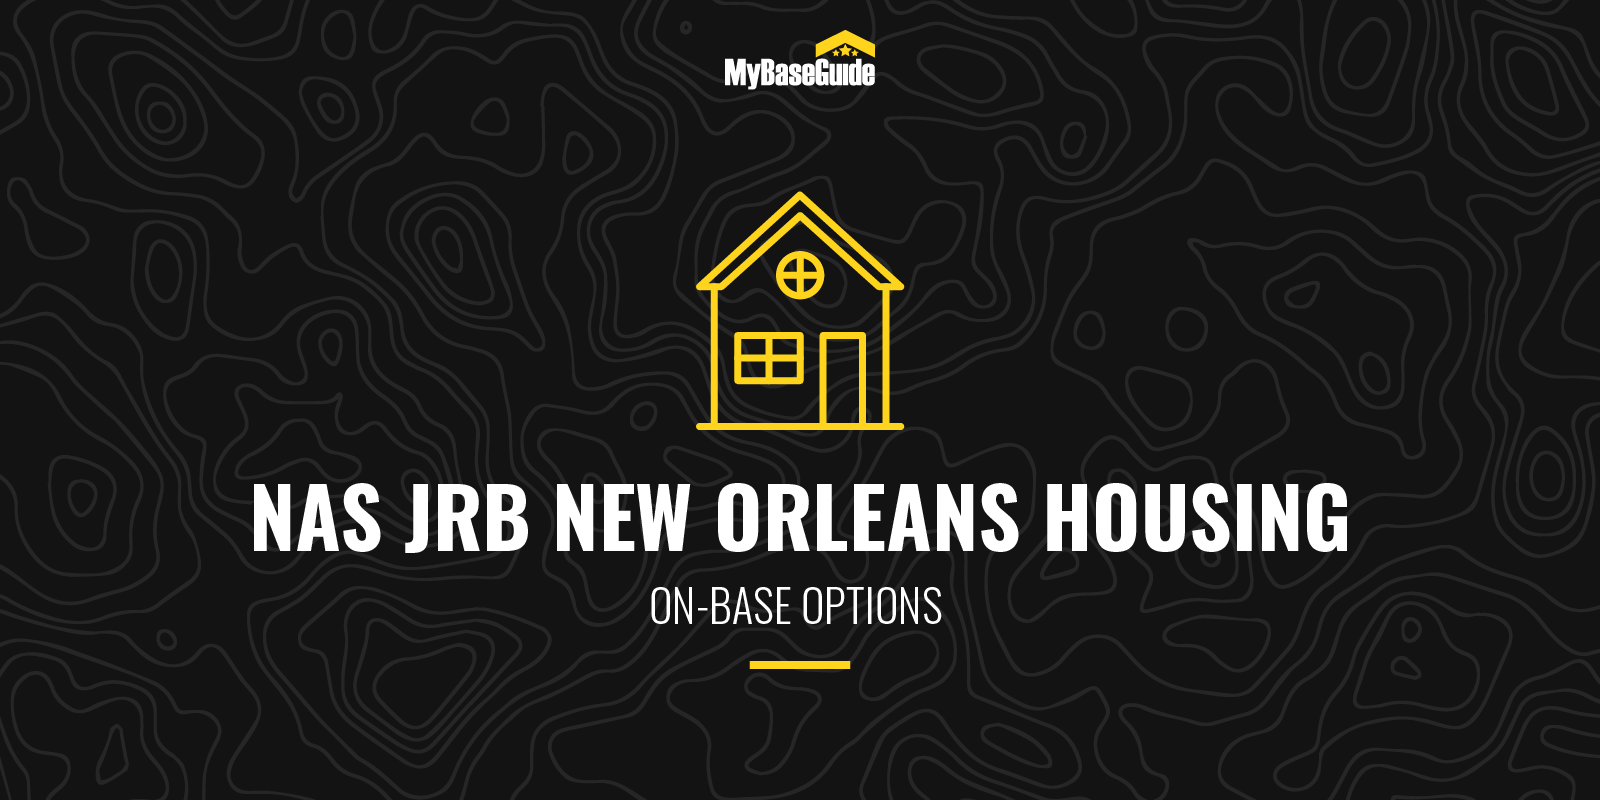 NAS JRB New Orleans Housing: On Base Options